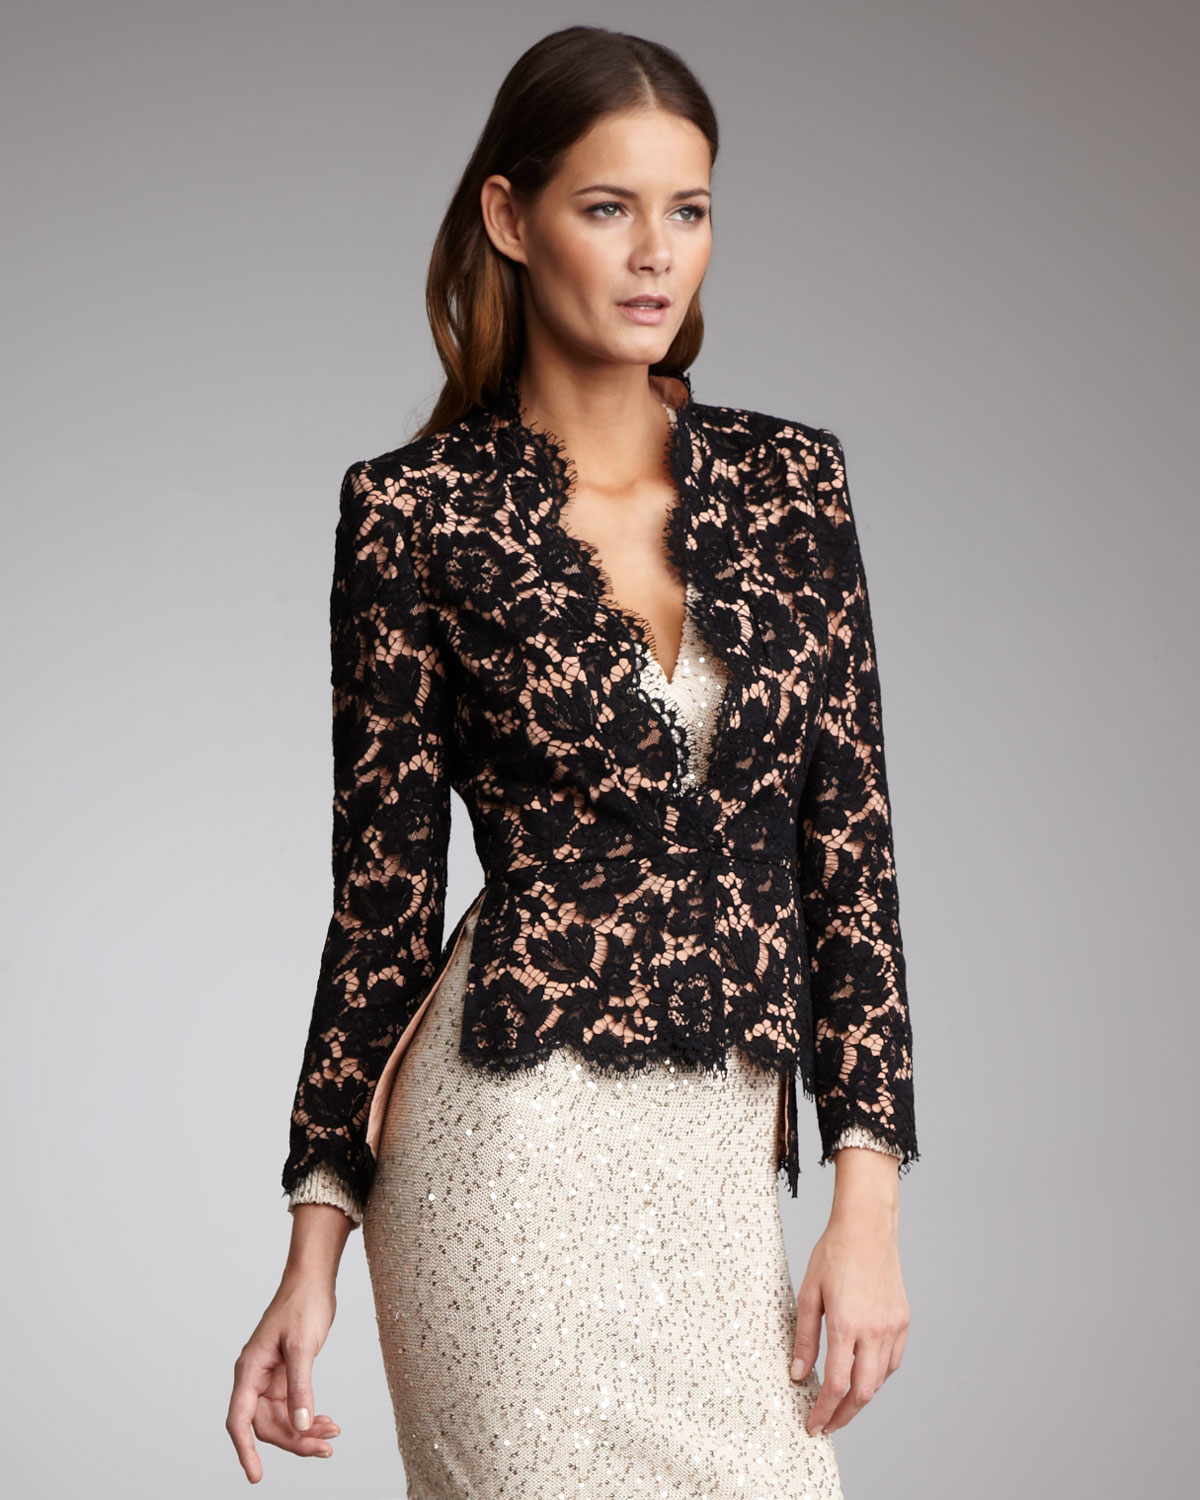 Lace Evening Jackets for Women_Evening Dresses_dressesss